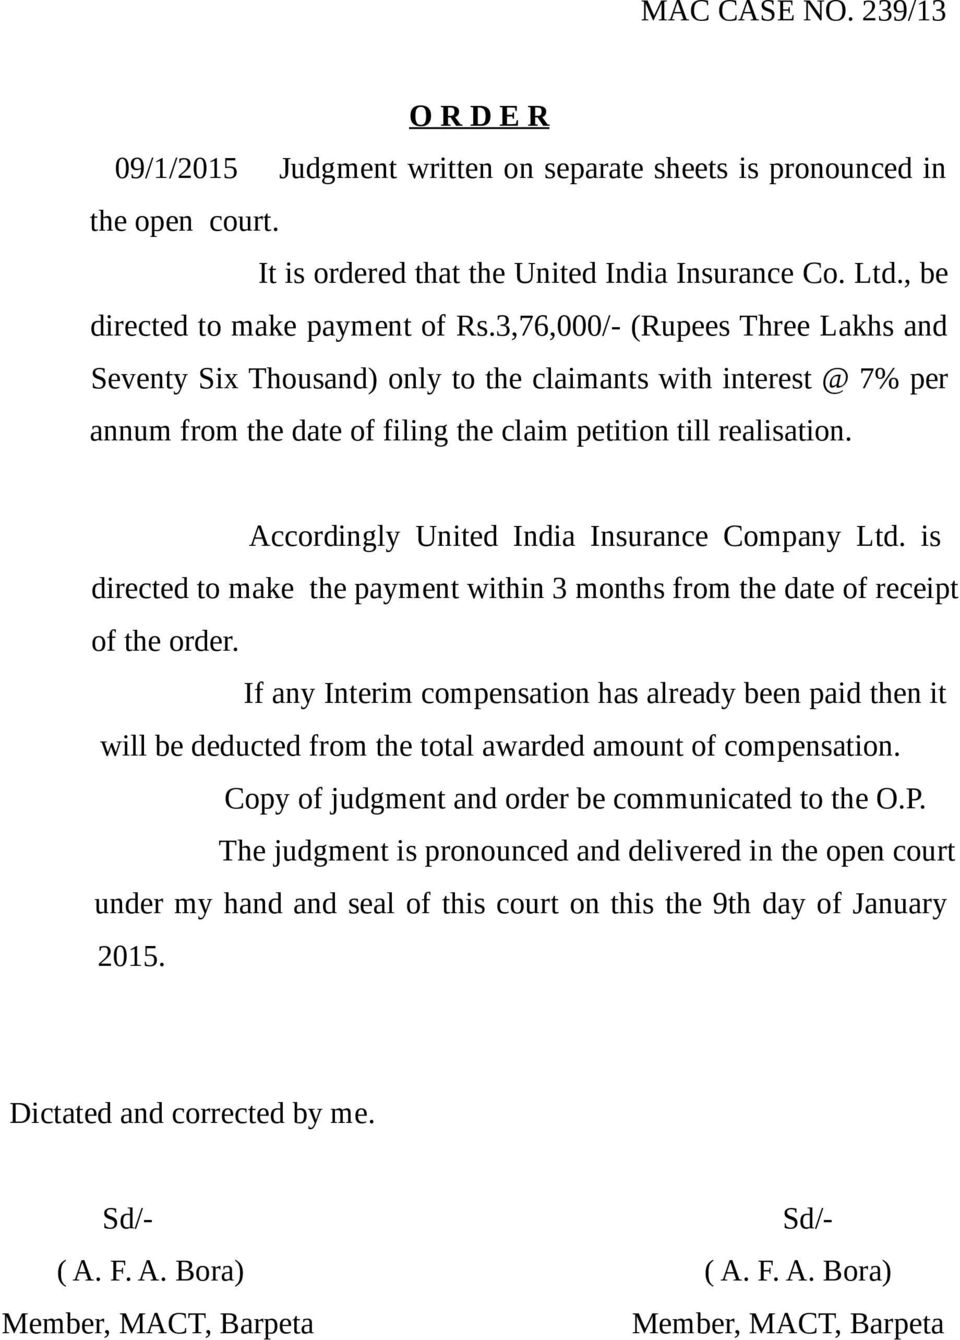 Accordingly United India Insurance Company Ltd. is directed to make the payment within 3 months from the date of receipt of the order.